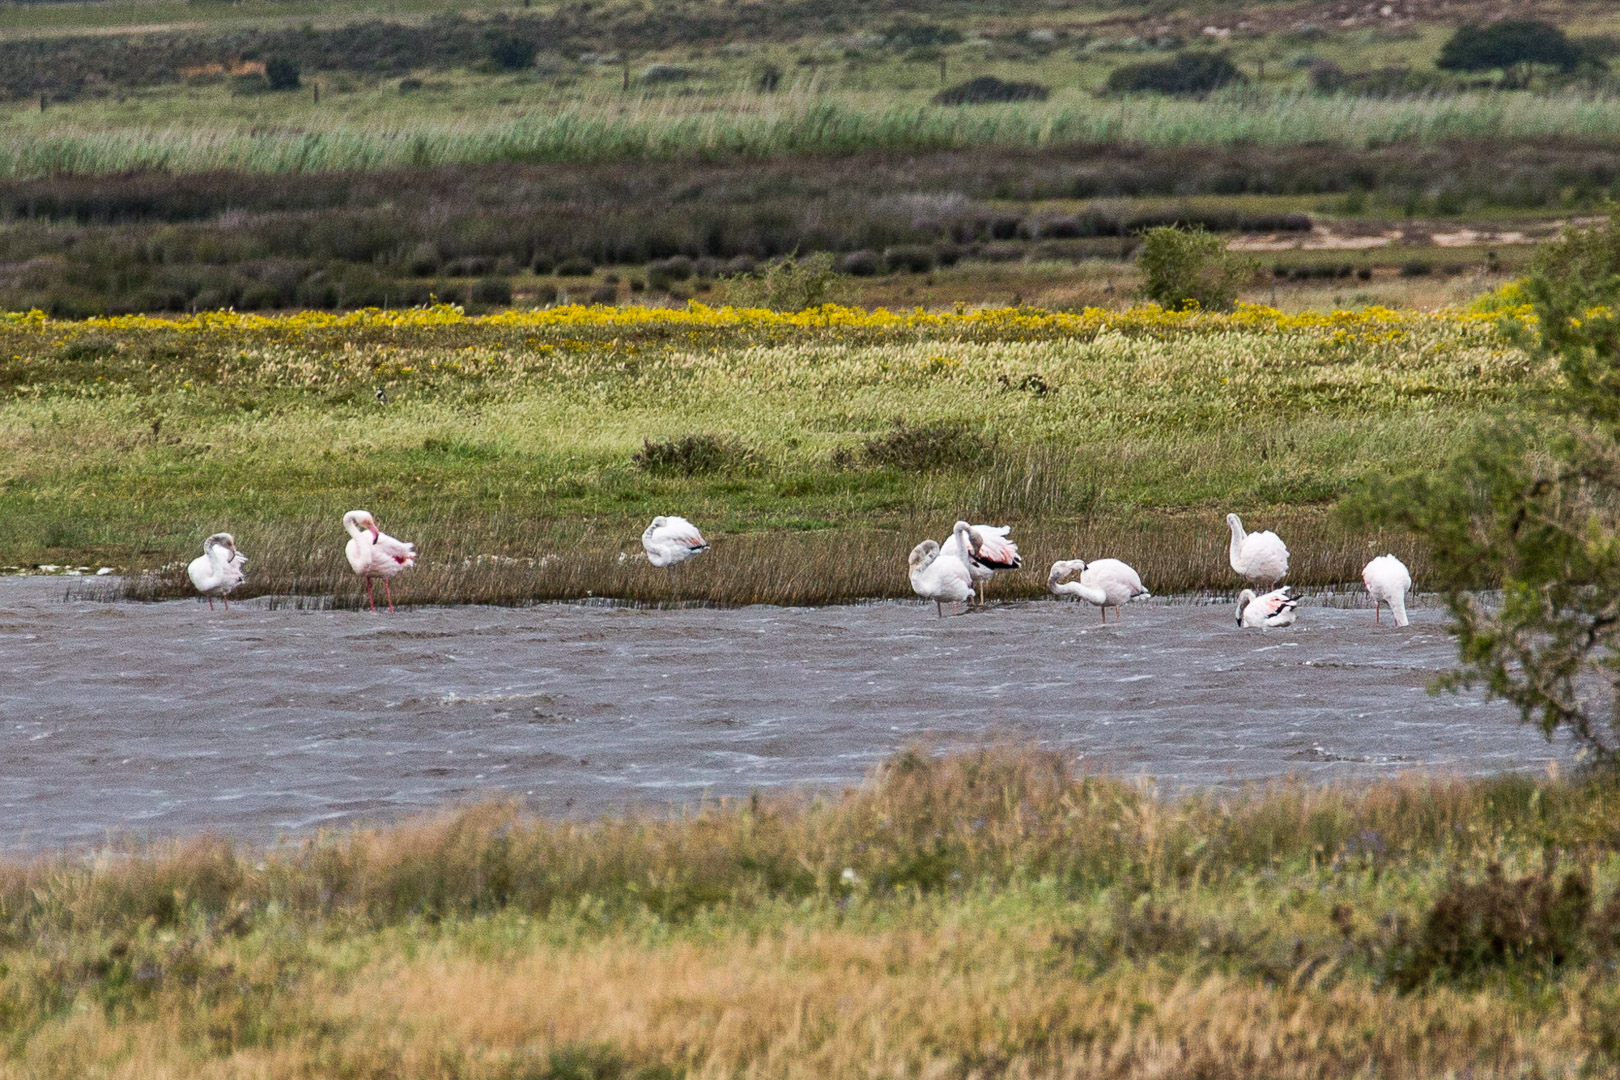 31.10. Cape Agulhas National Park. Flamingos.